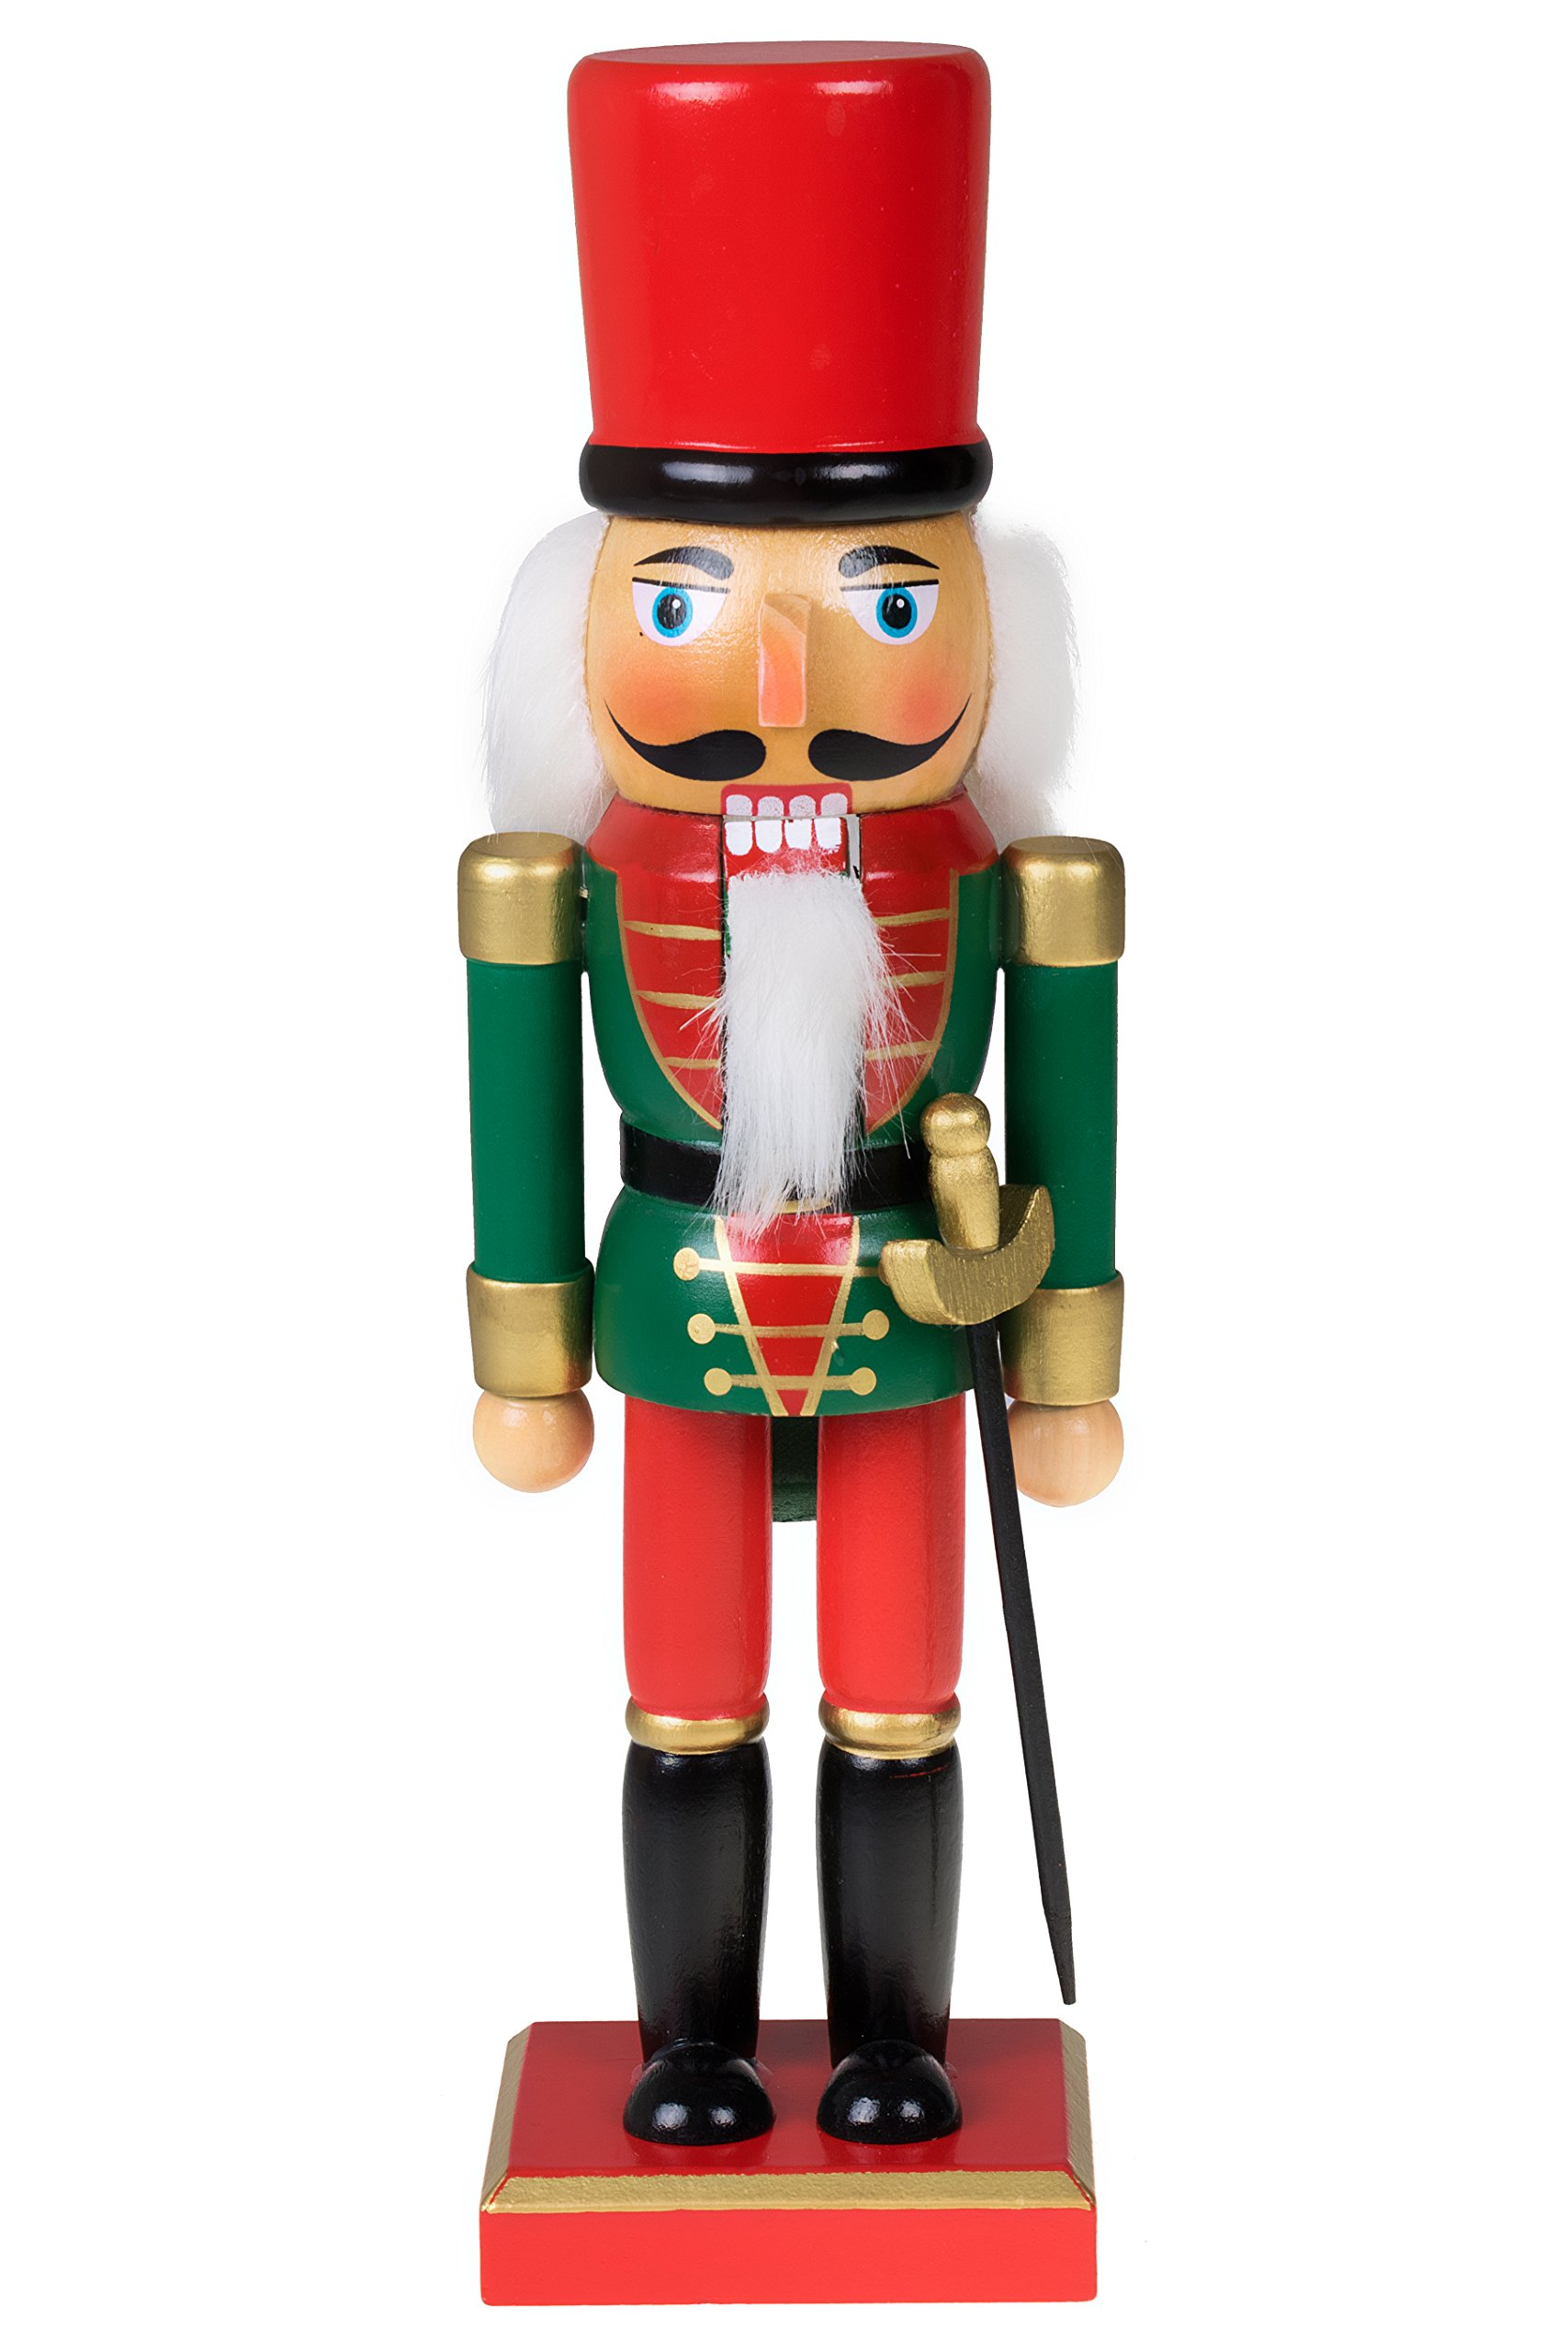 Clever Creations Traditional Christmas Green and Red Soldier Nutcracker | Soldier Outfit with Sword | Festive Christmas Decor | 10'' Tall Perfect for Shelves and Tables